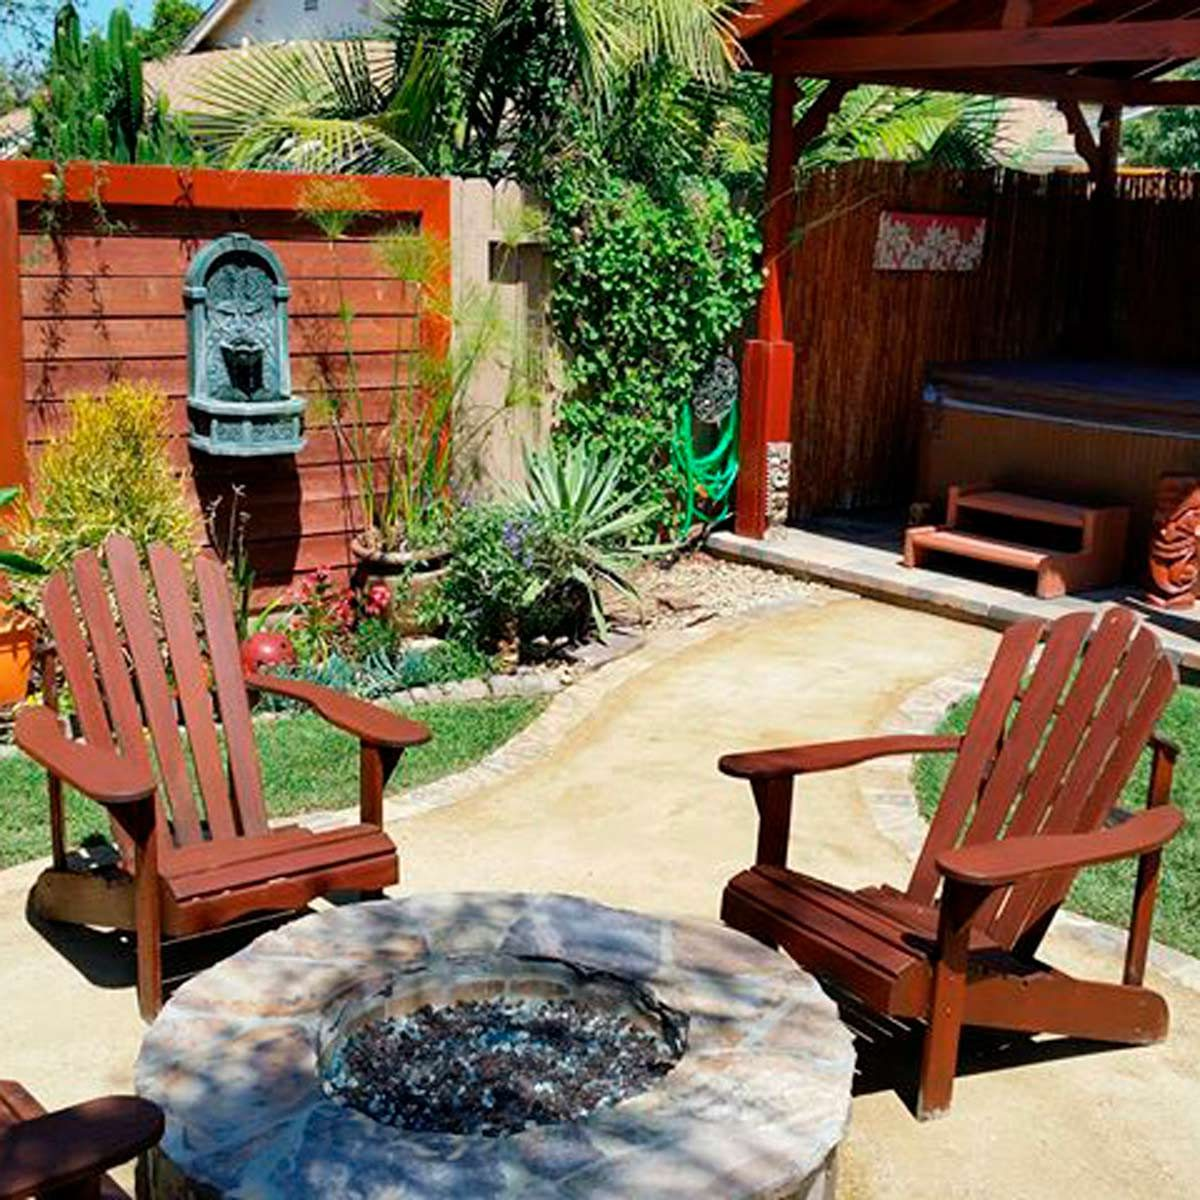 DIY backyard oasis